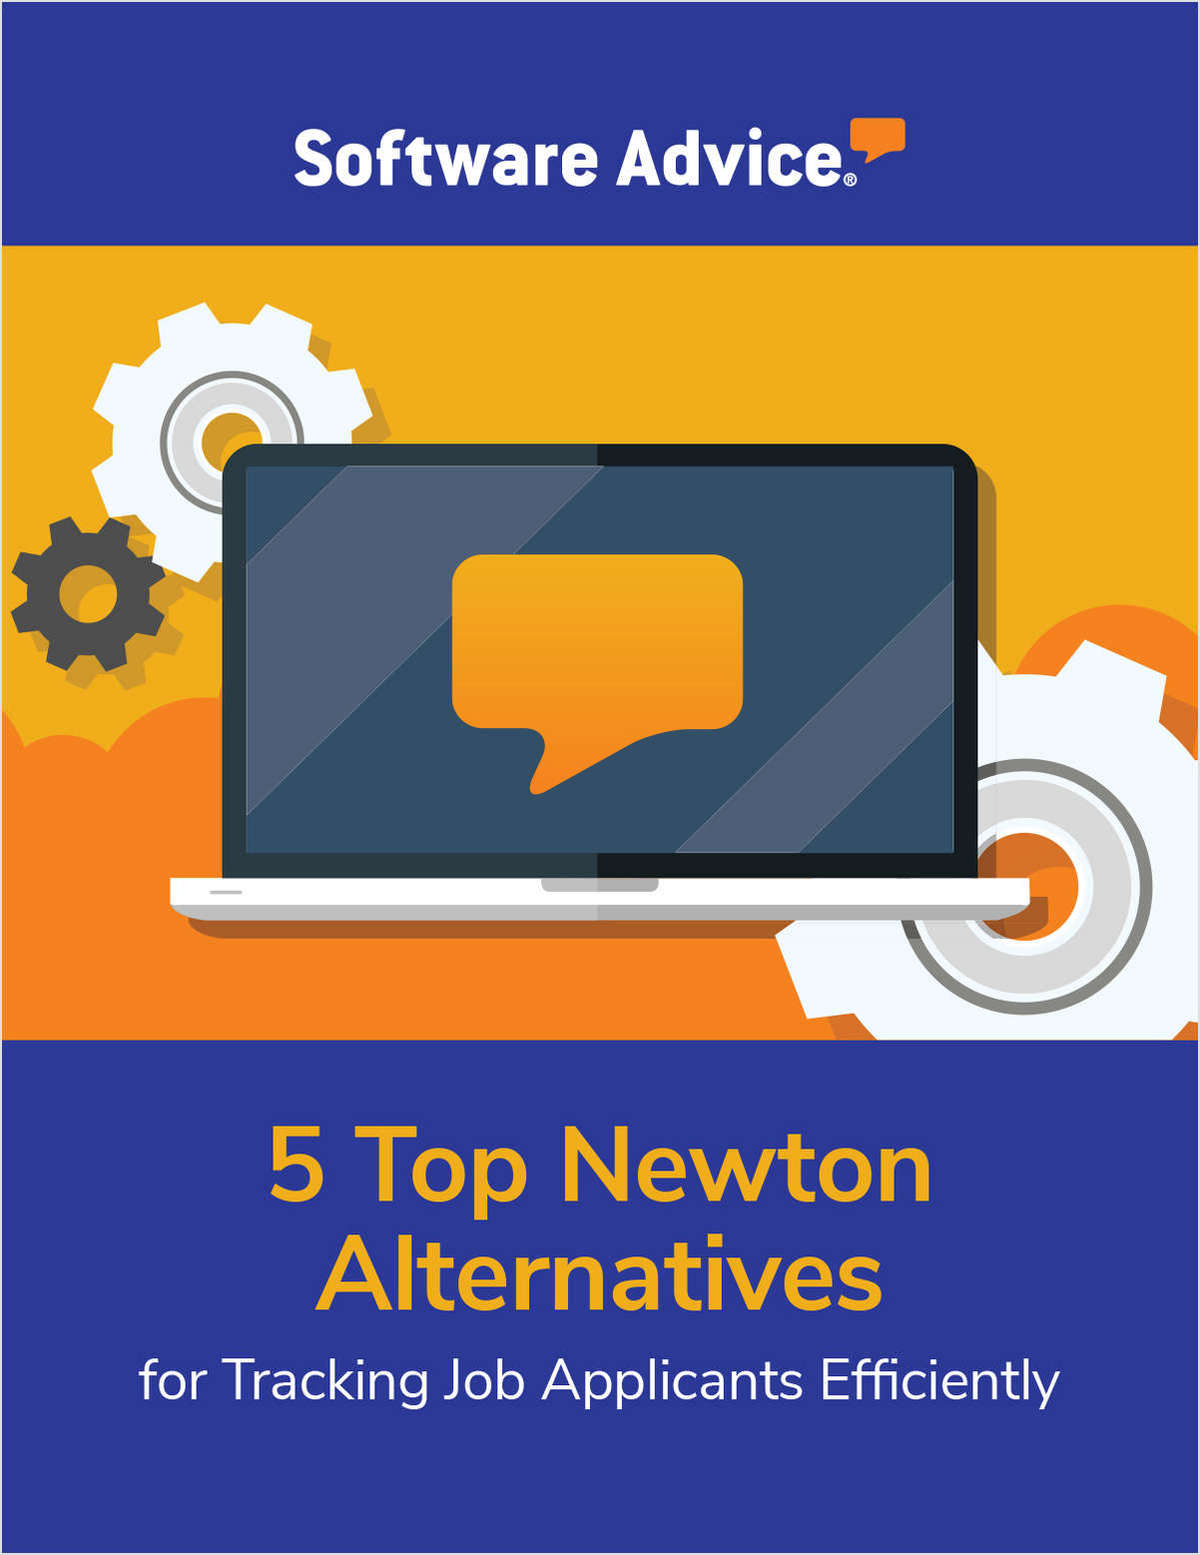 5 Top Newton Alternatives for Tracking Job Applicants Efficiently